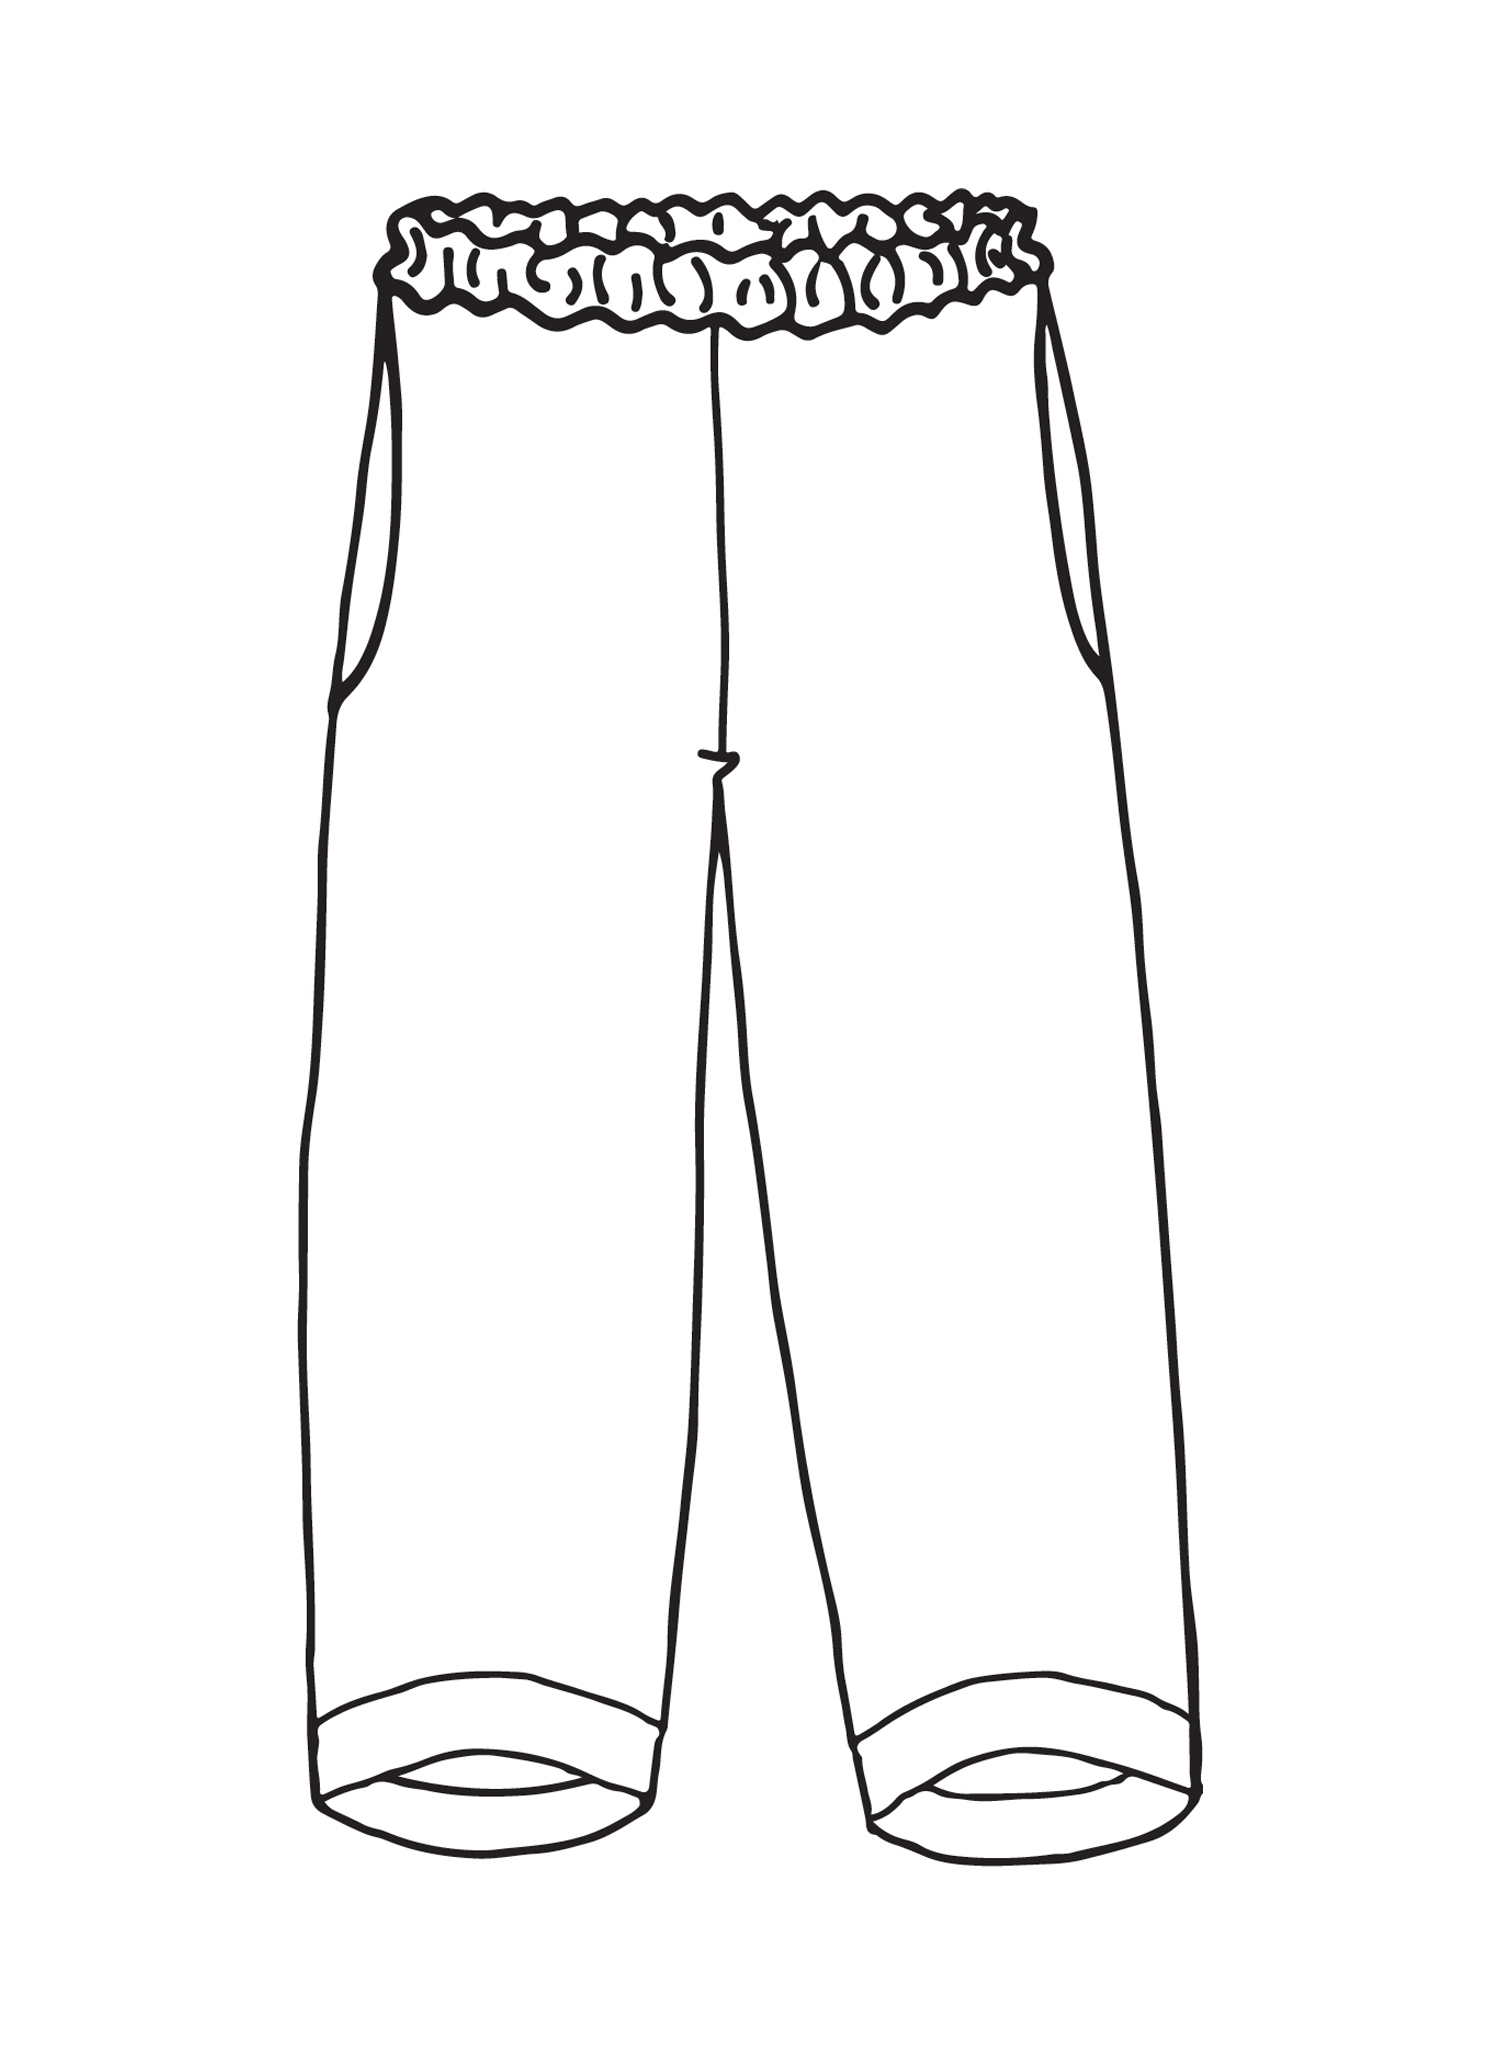 Cropped Pant sketch image